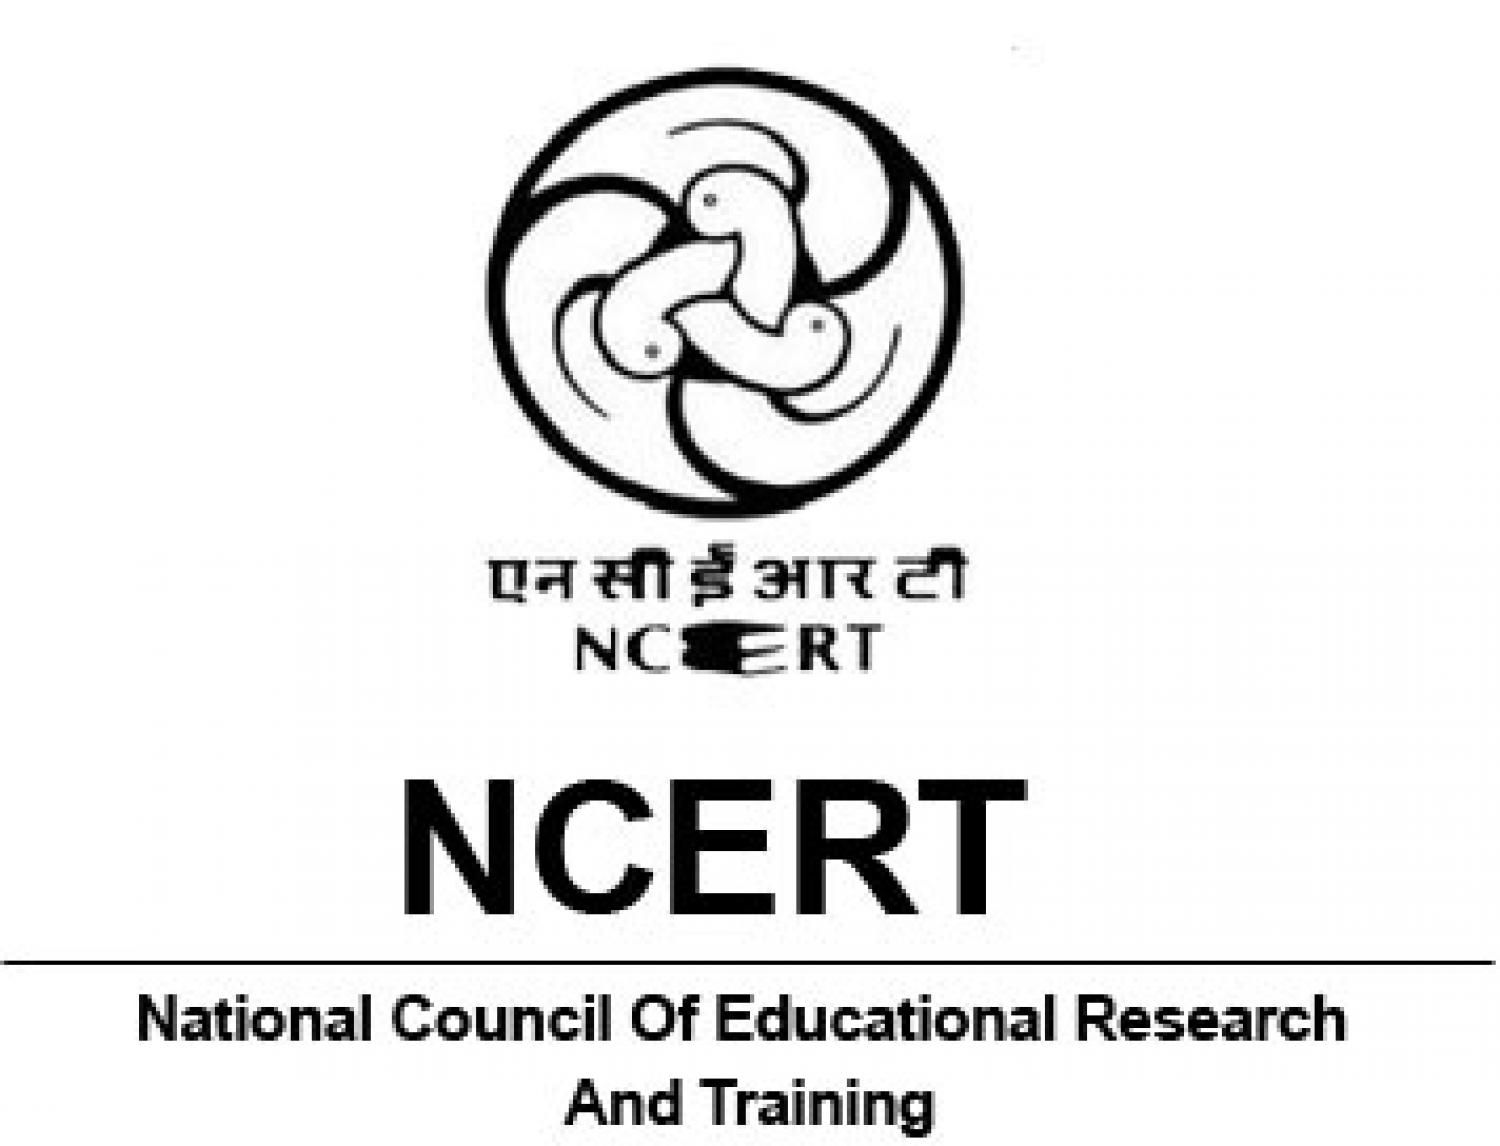 NCERT & Rotary India signs MoU to telecast e-content_40.1